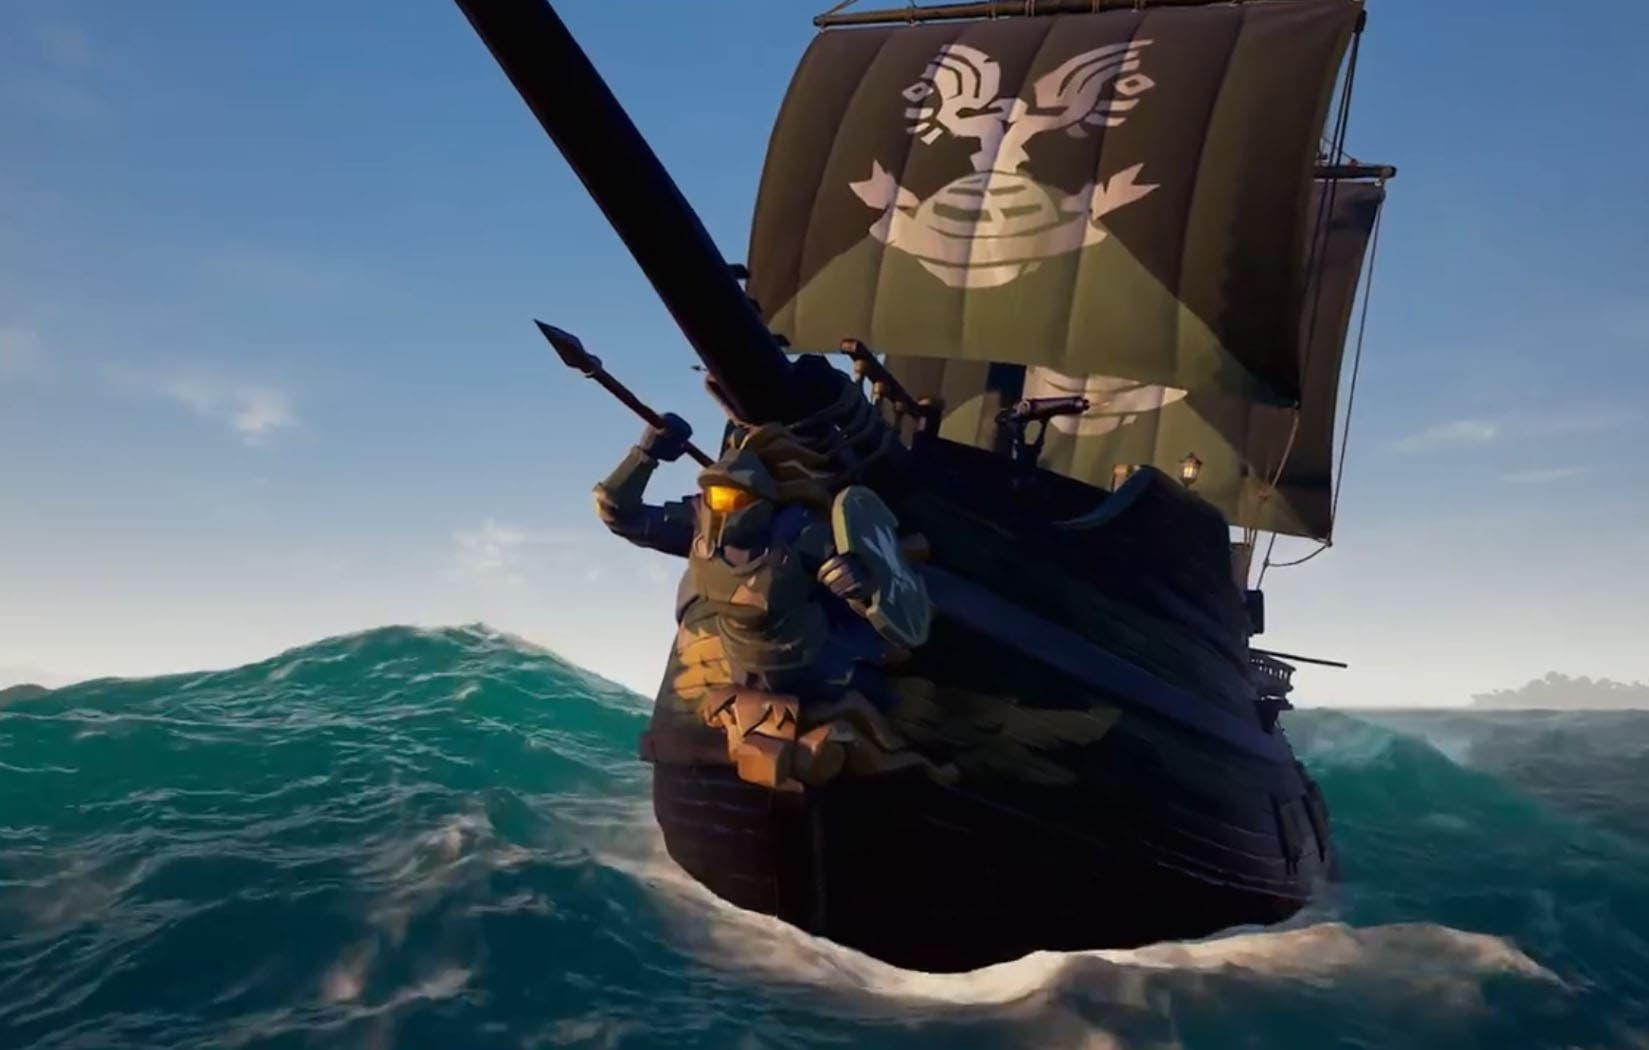 Sea of Thieves anticipa la llegada de actualizaciones por temporadas con Plunder Pass 4